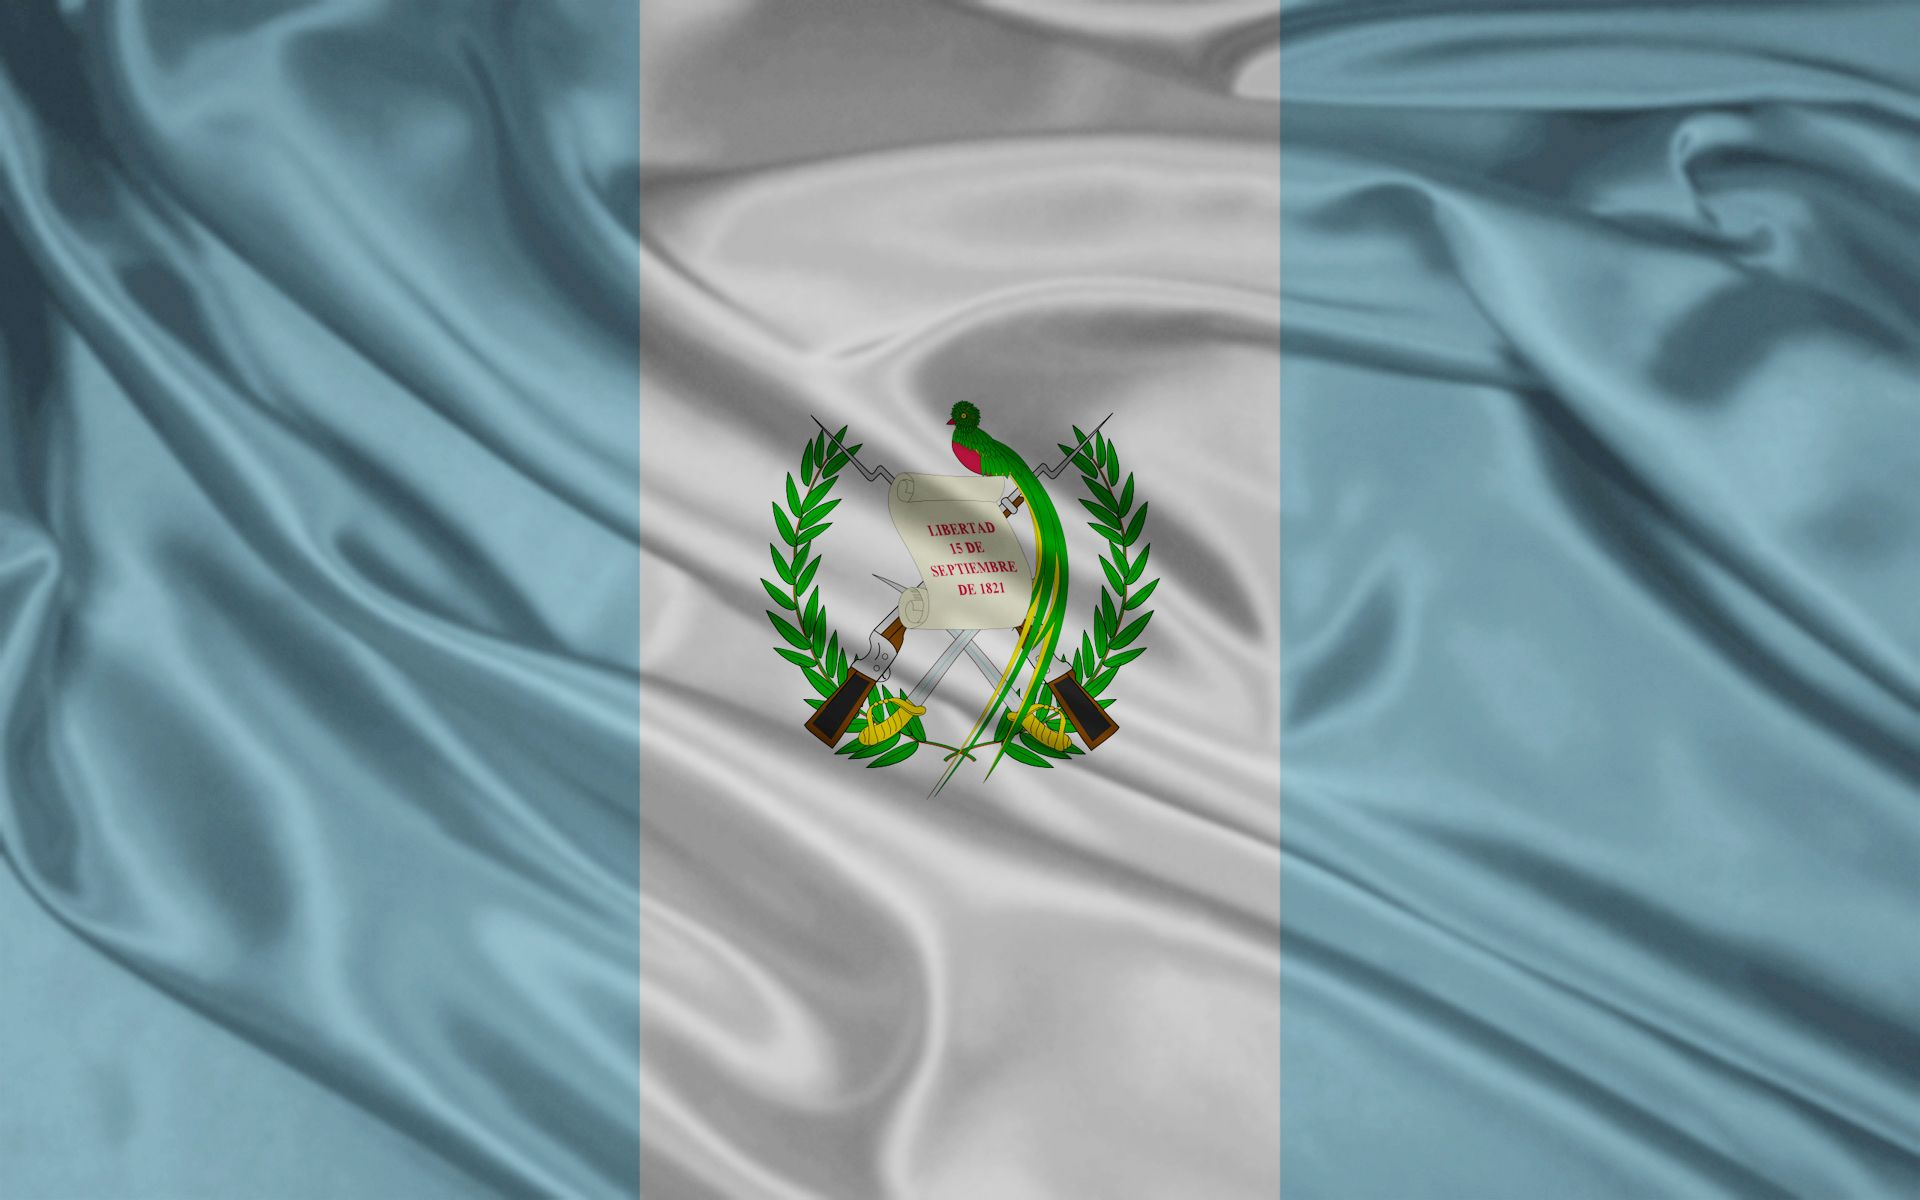 The inside of the flag, the white portion, resembles peace. (The date says Liberty; September 15, 1821.) The two outer blue sides represent that the country of Guatemala has an ocean on each side of it, the Atlantic and the Pacific Oceans. The shade of the blue sides, however, have been changed many times for no reason.